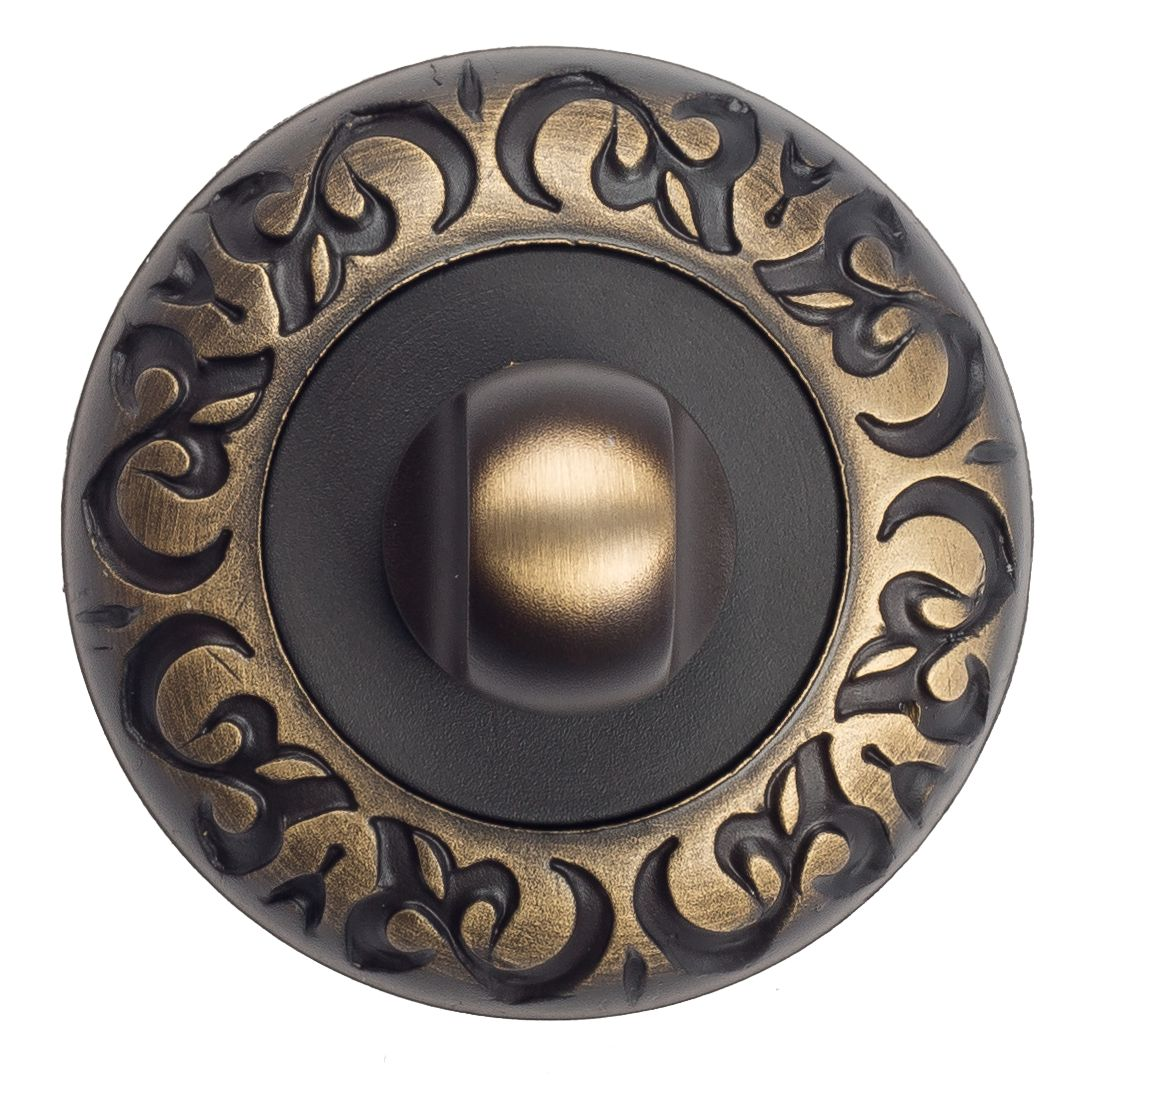 Bathroom Turn & Release Venezia WC-1 D4 Dark Bronze